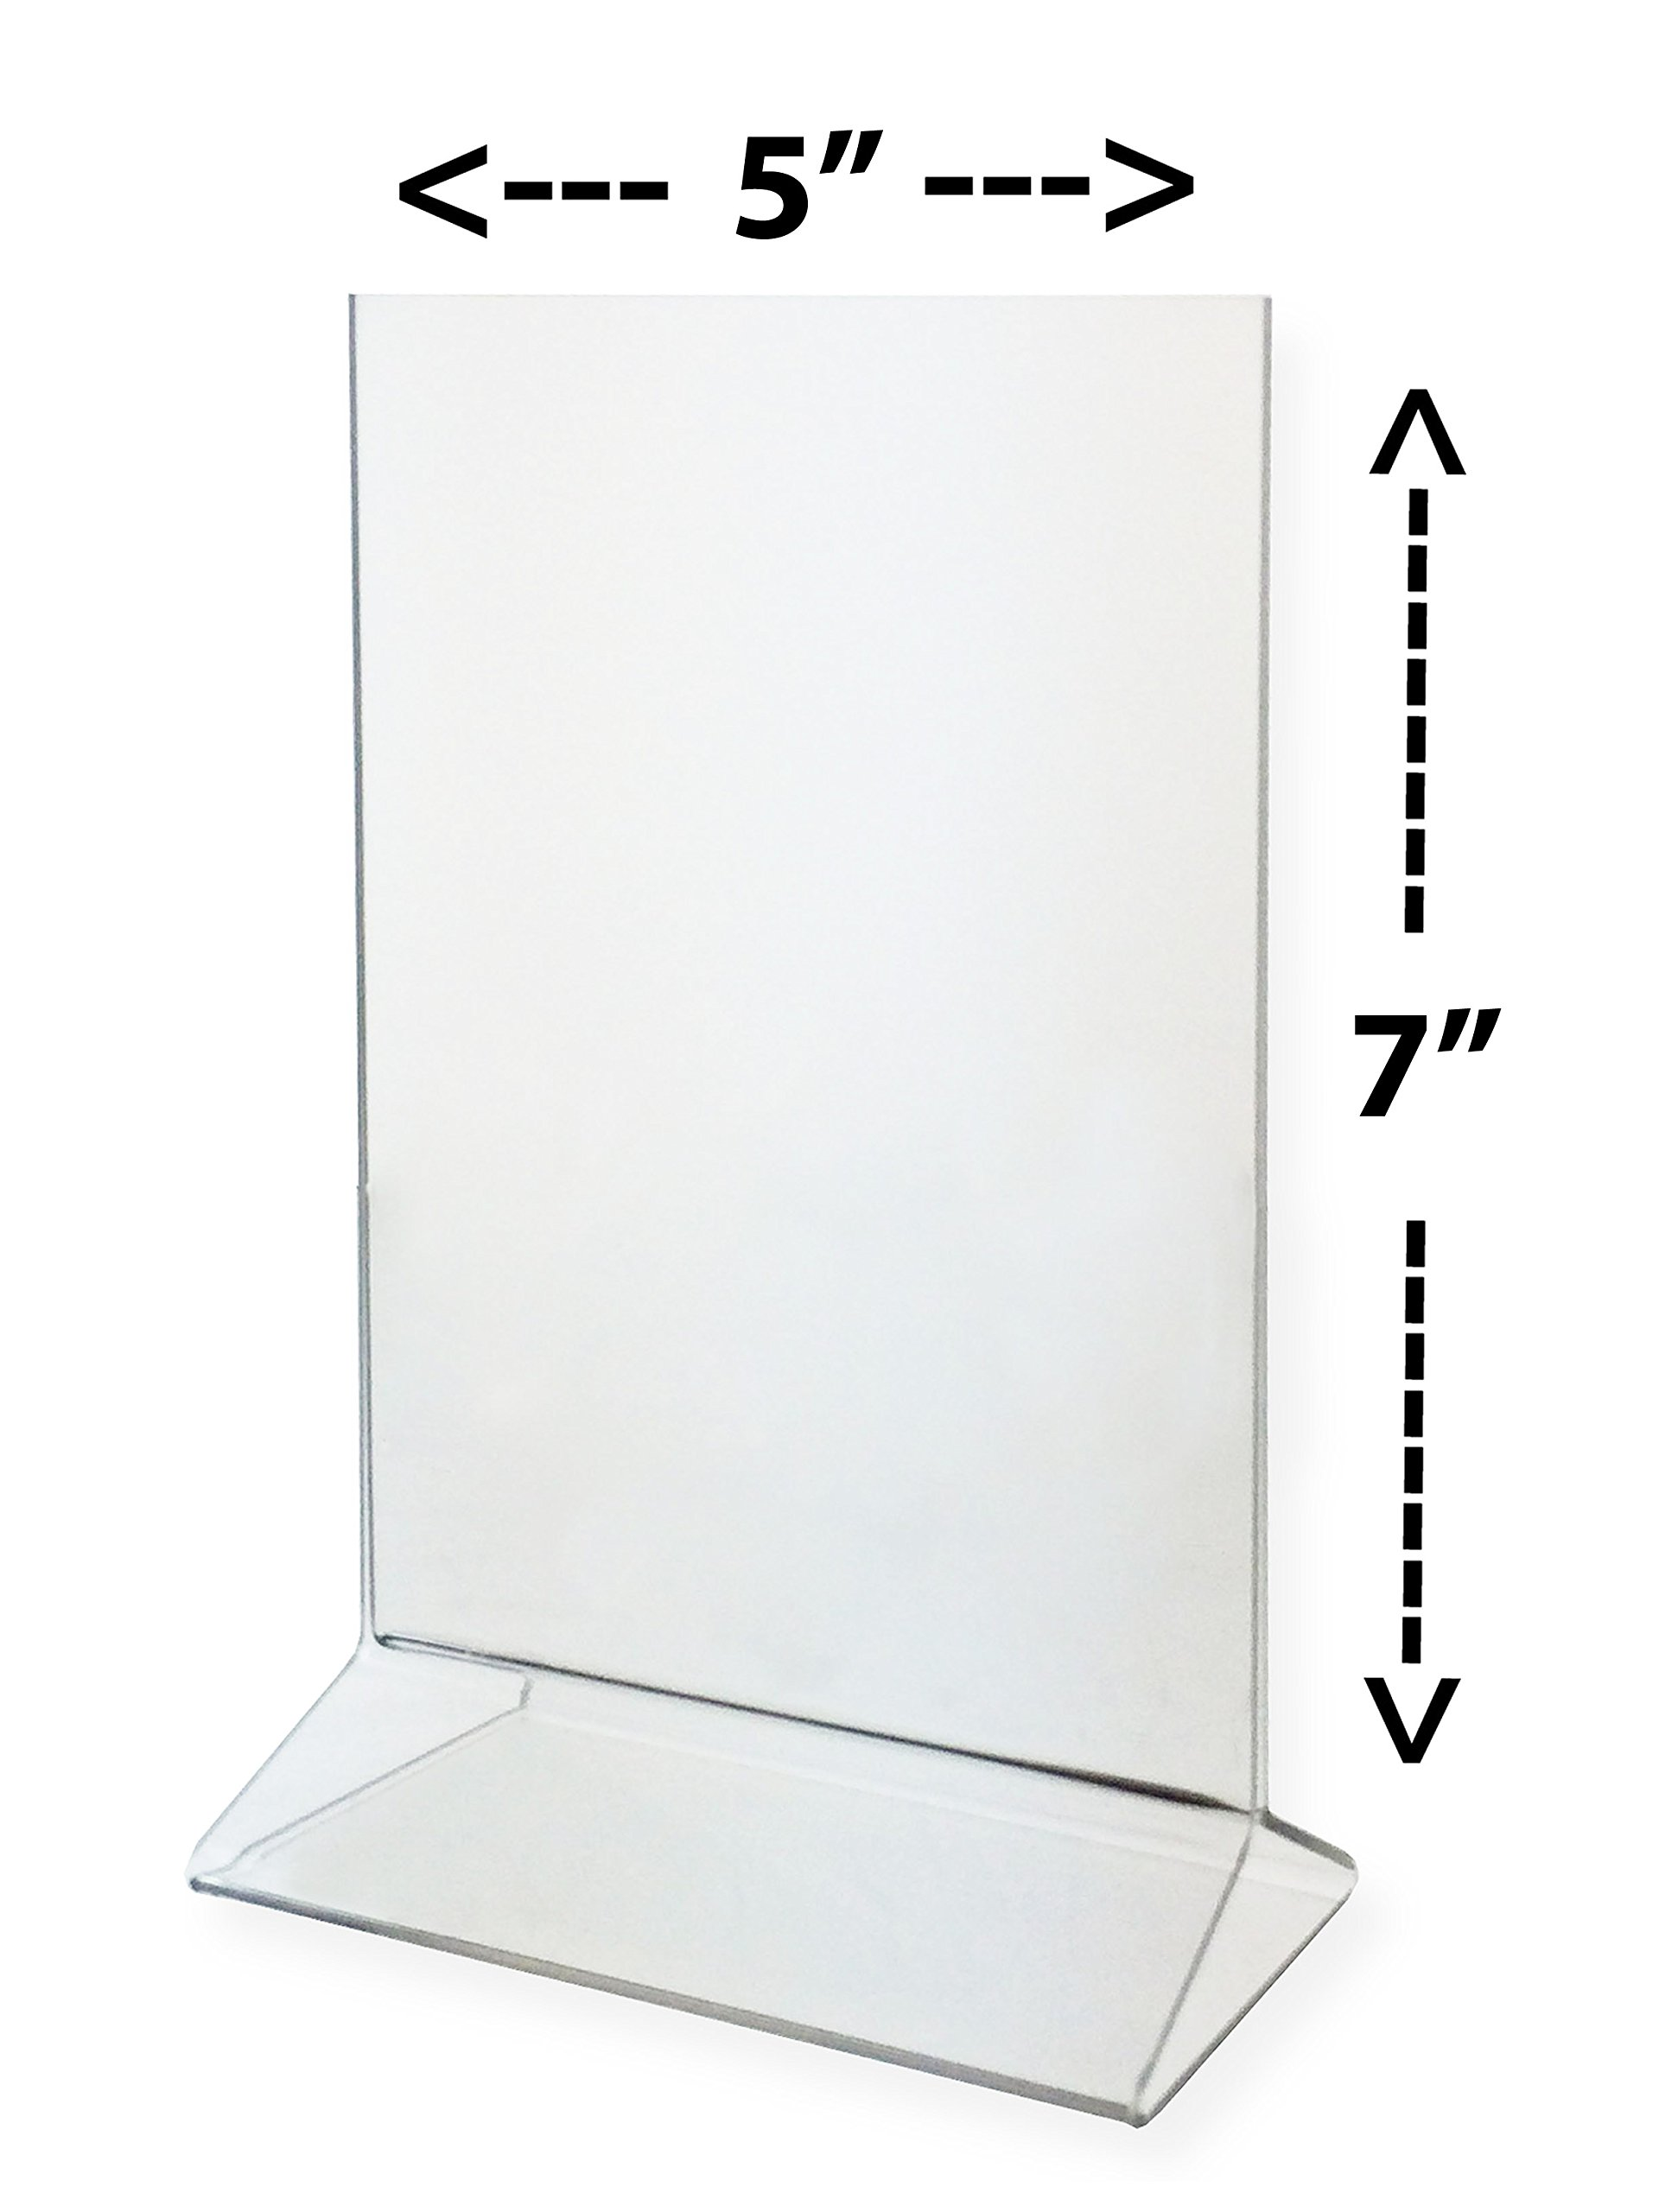 CipheRave Pack of 3 - Double Sided, Clear Acrylic Sign Holder, Ad Frame 5 x 7, Market Display for Menus, Promotions, Ads, and more!